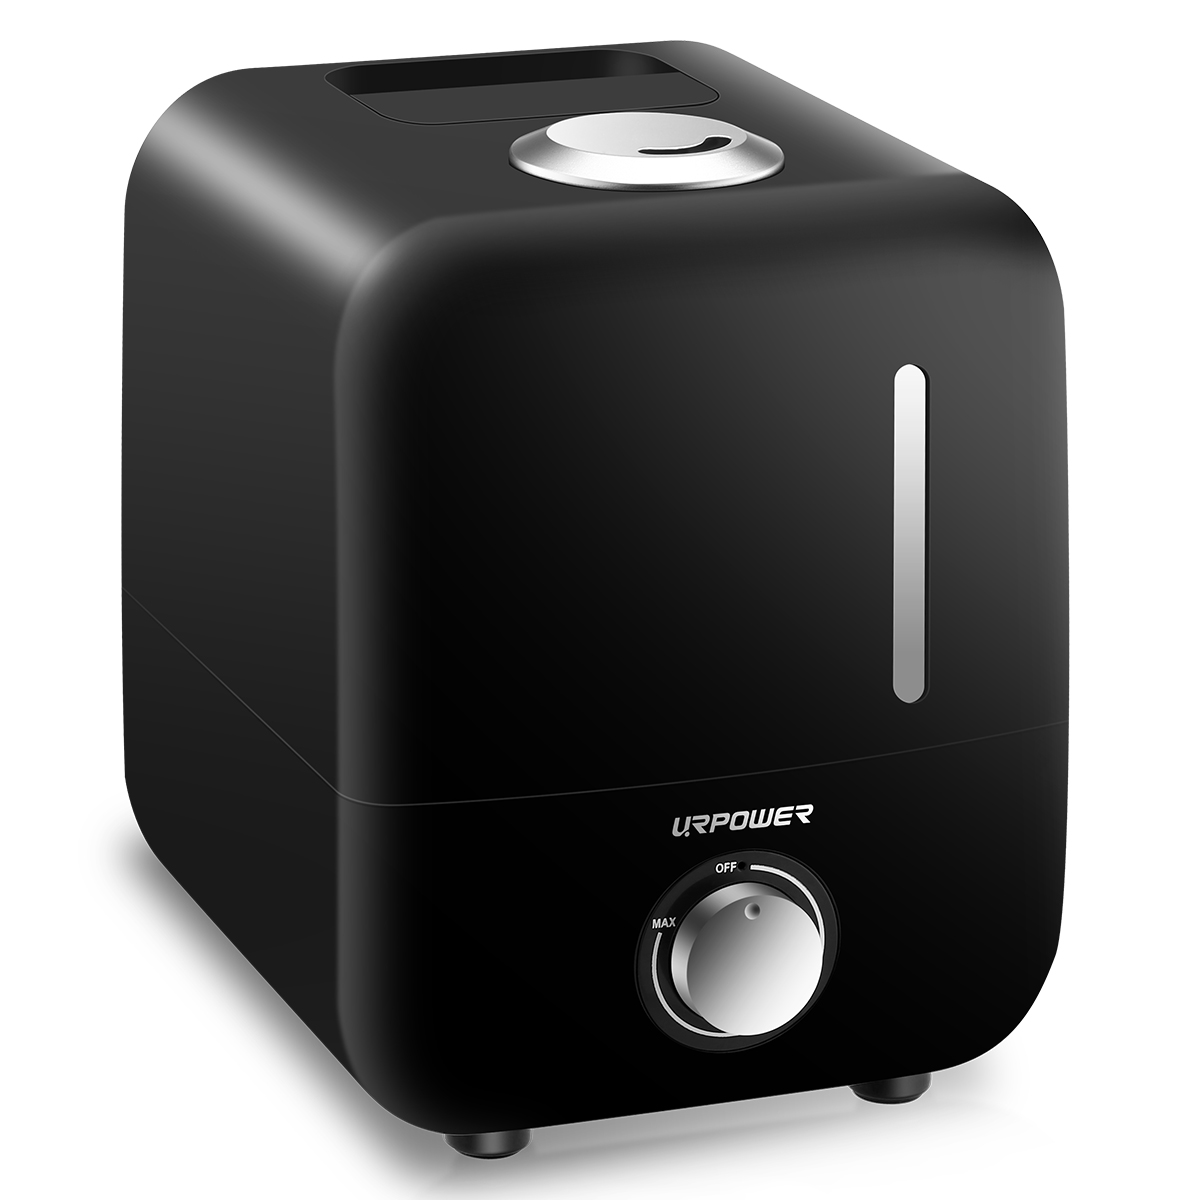 URPOWER Cool Mist Humidifier Waterless Auto Off with Filter Adjustable Mist Direction & Output